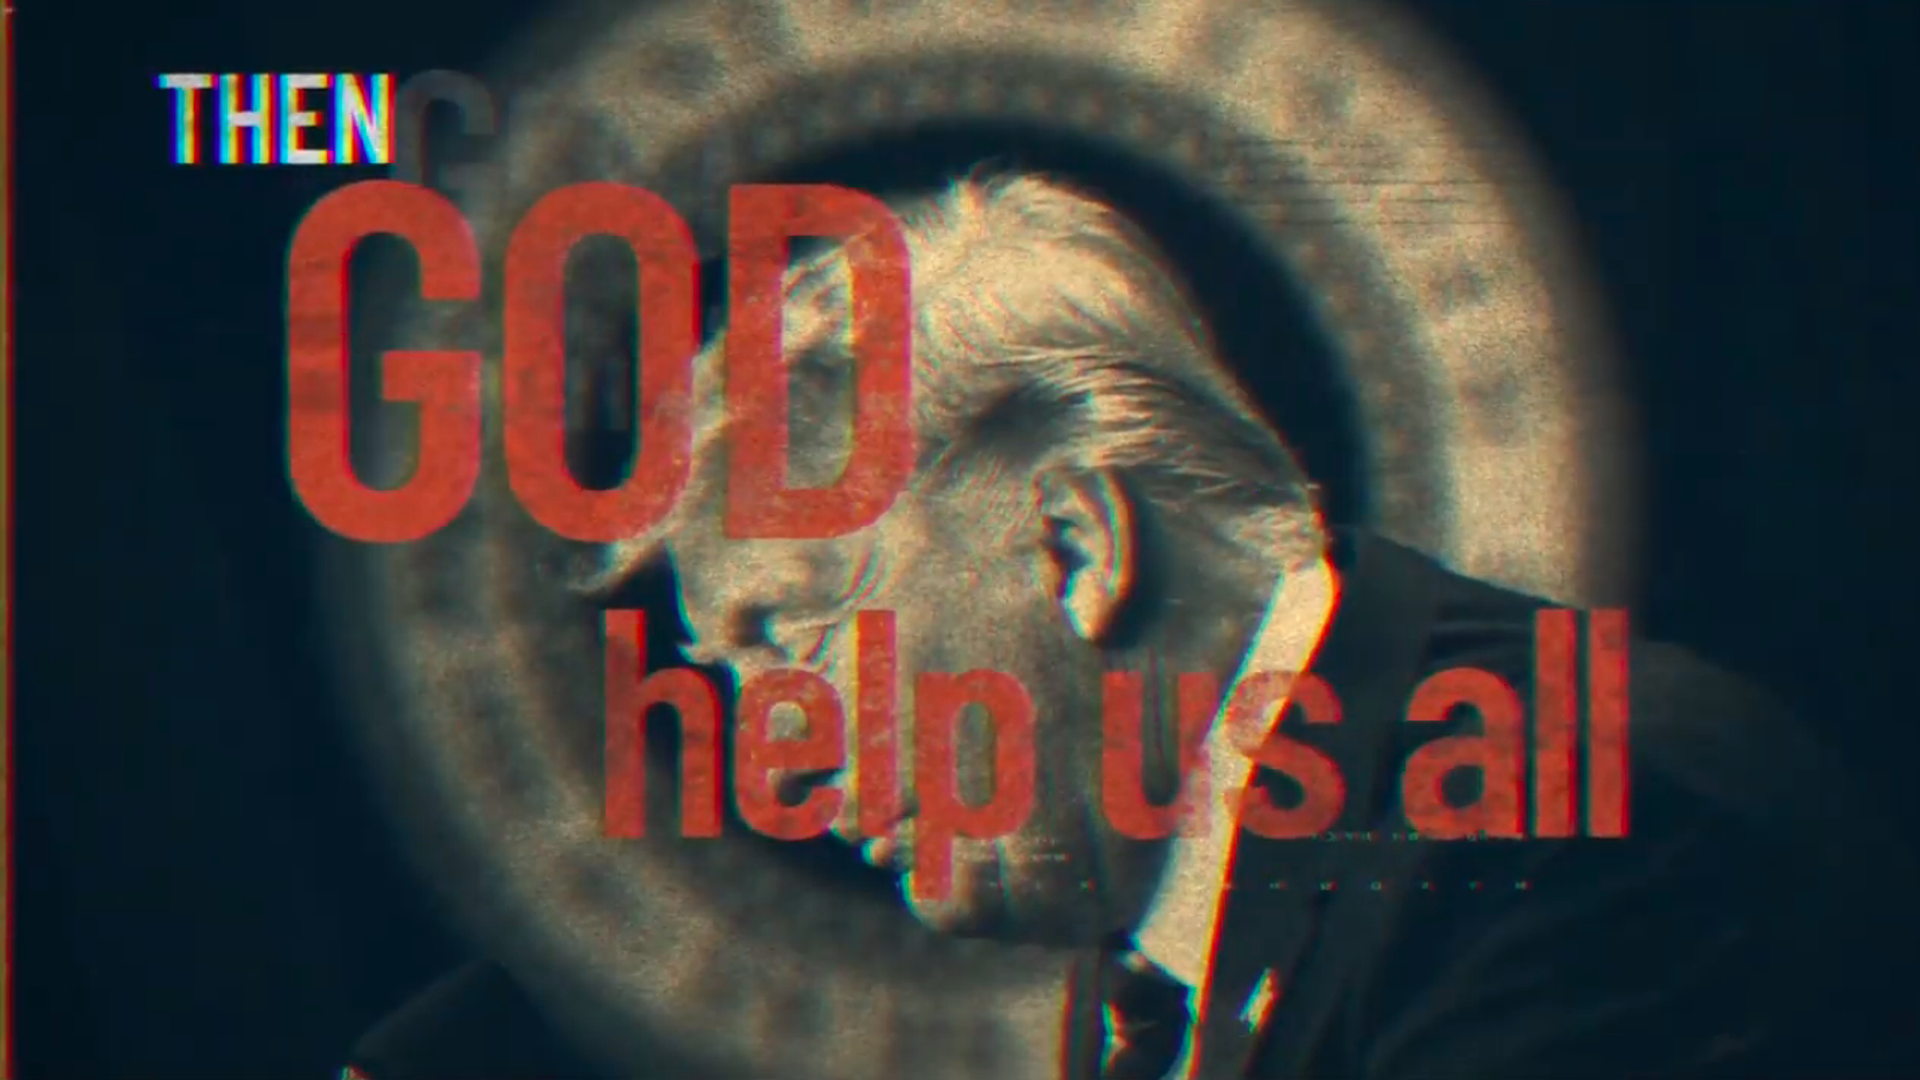 Watch: Anti-Trump Lincoln Project targets evangelical voters with new video